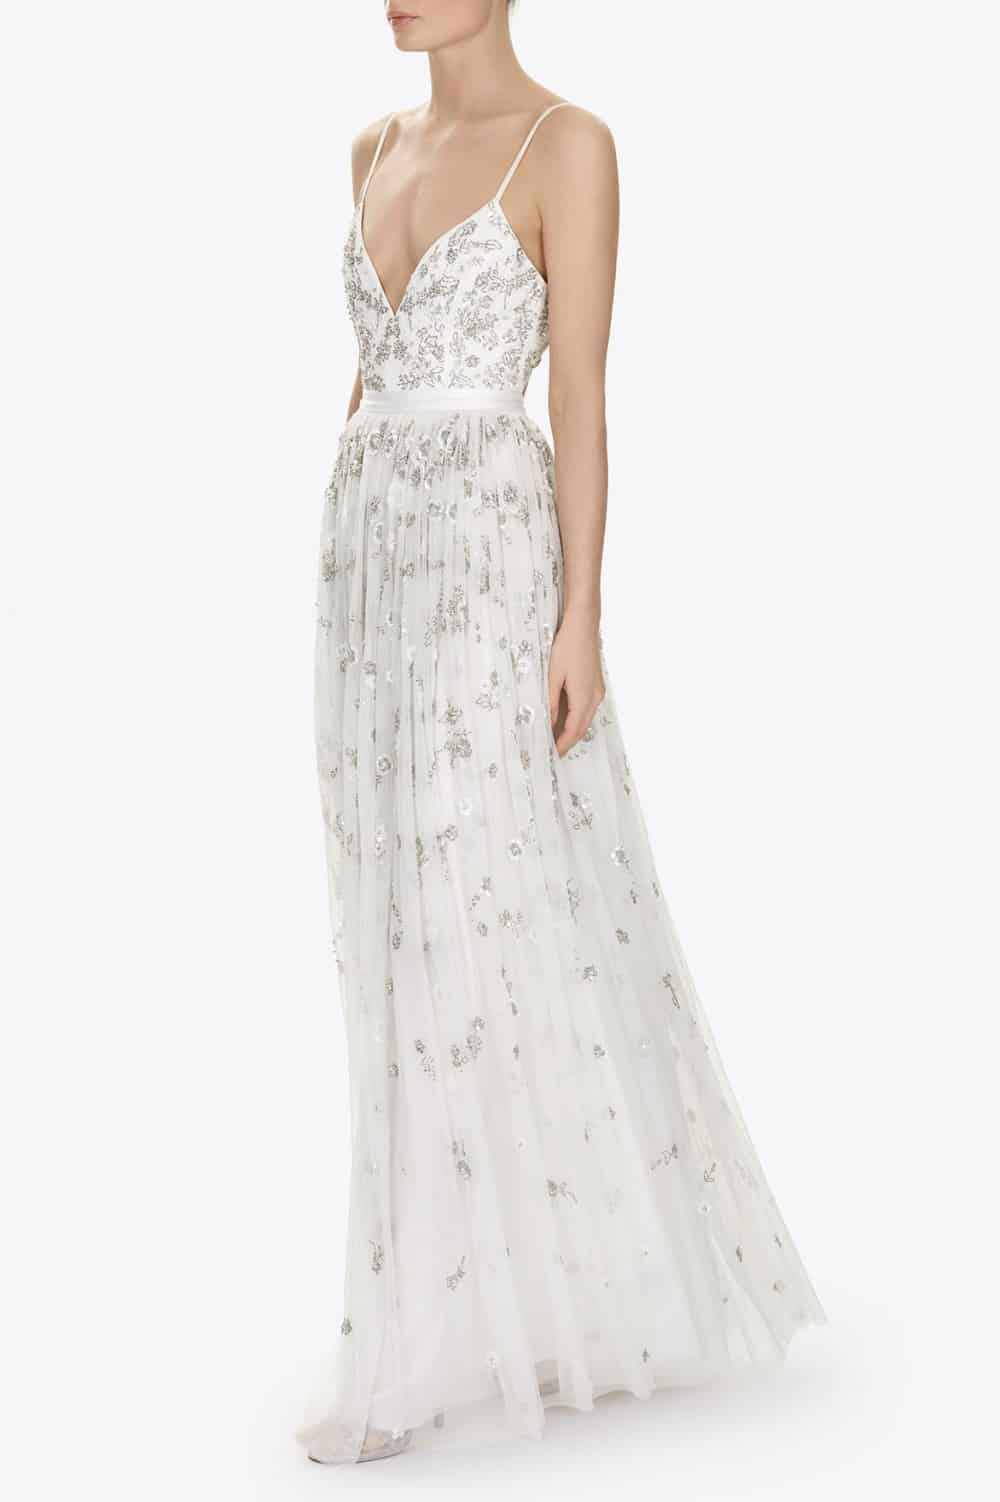 ASTRAL MAXI Wedding DRESS by needle and thread